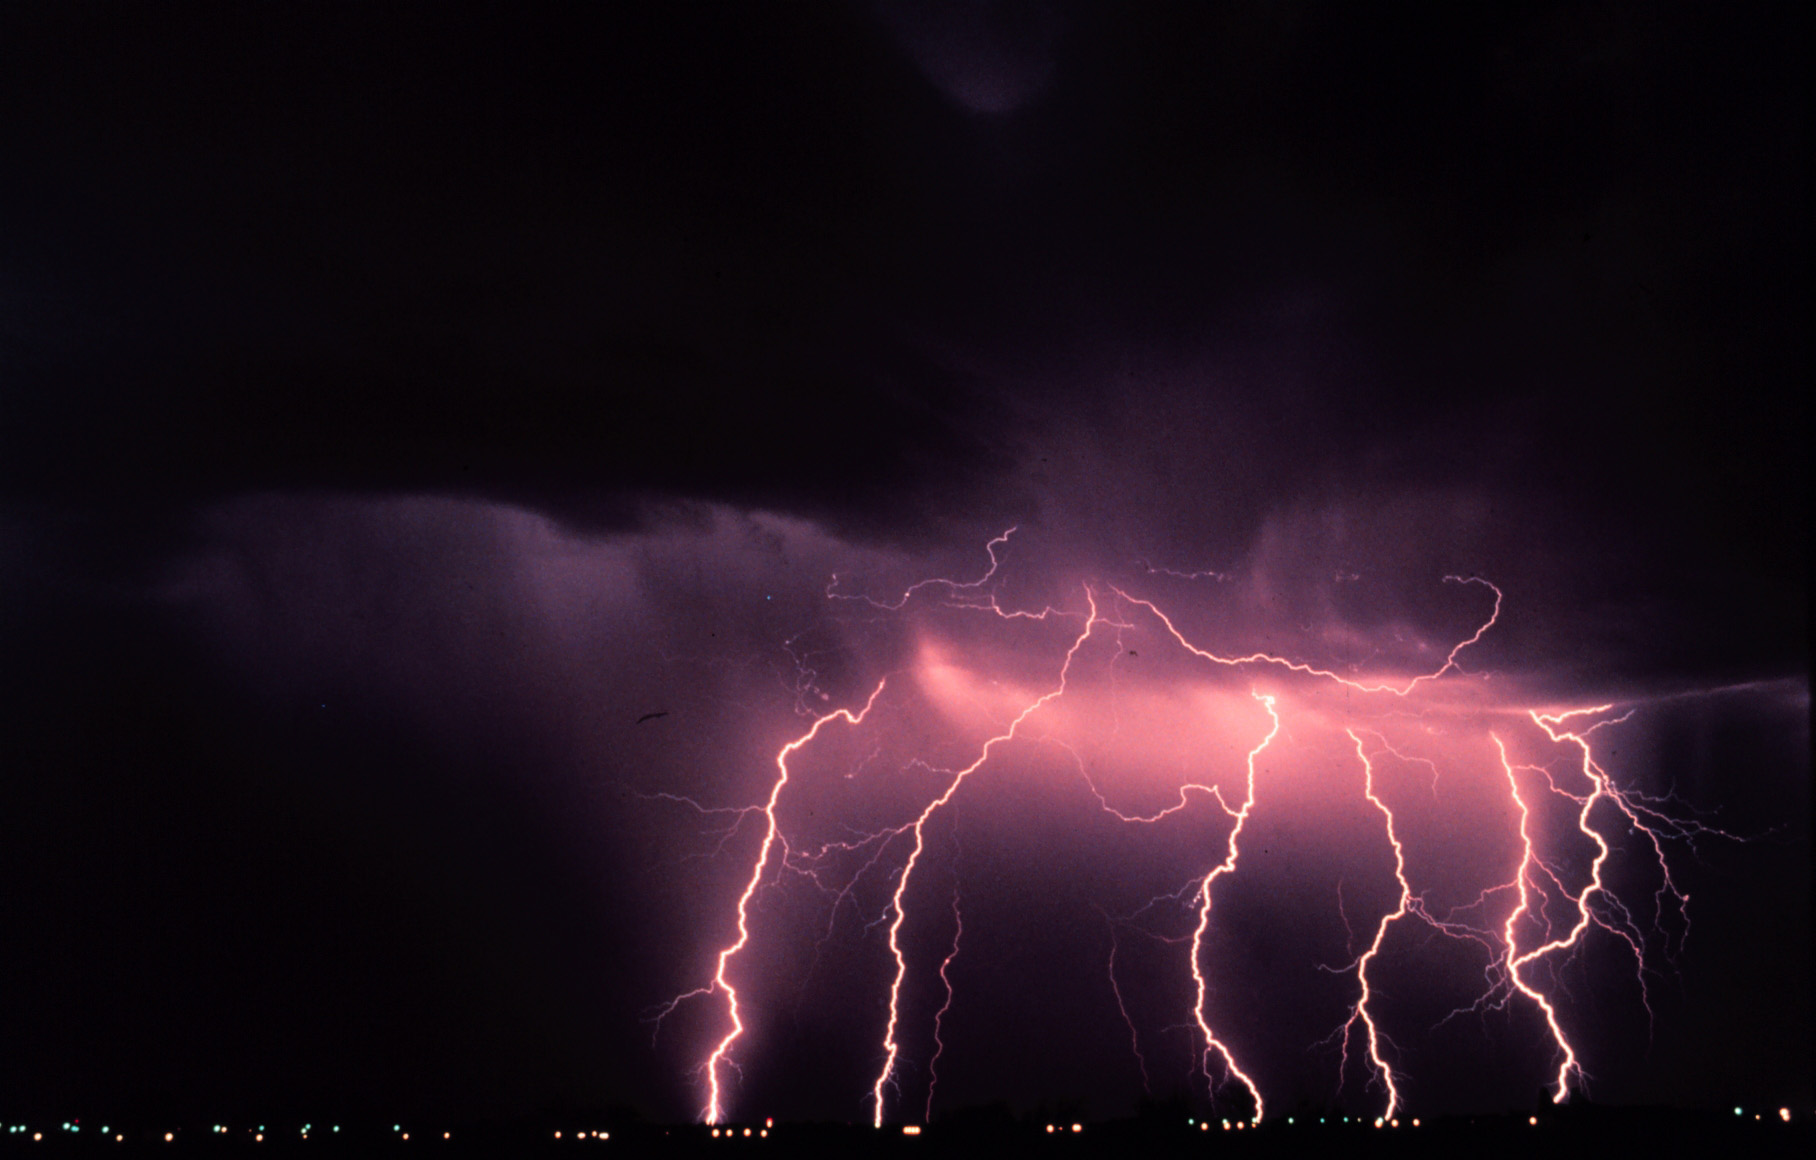 http://www.nasa.gov/images/content/150599main_lightning_photo.jpg